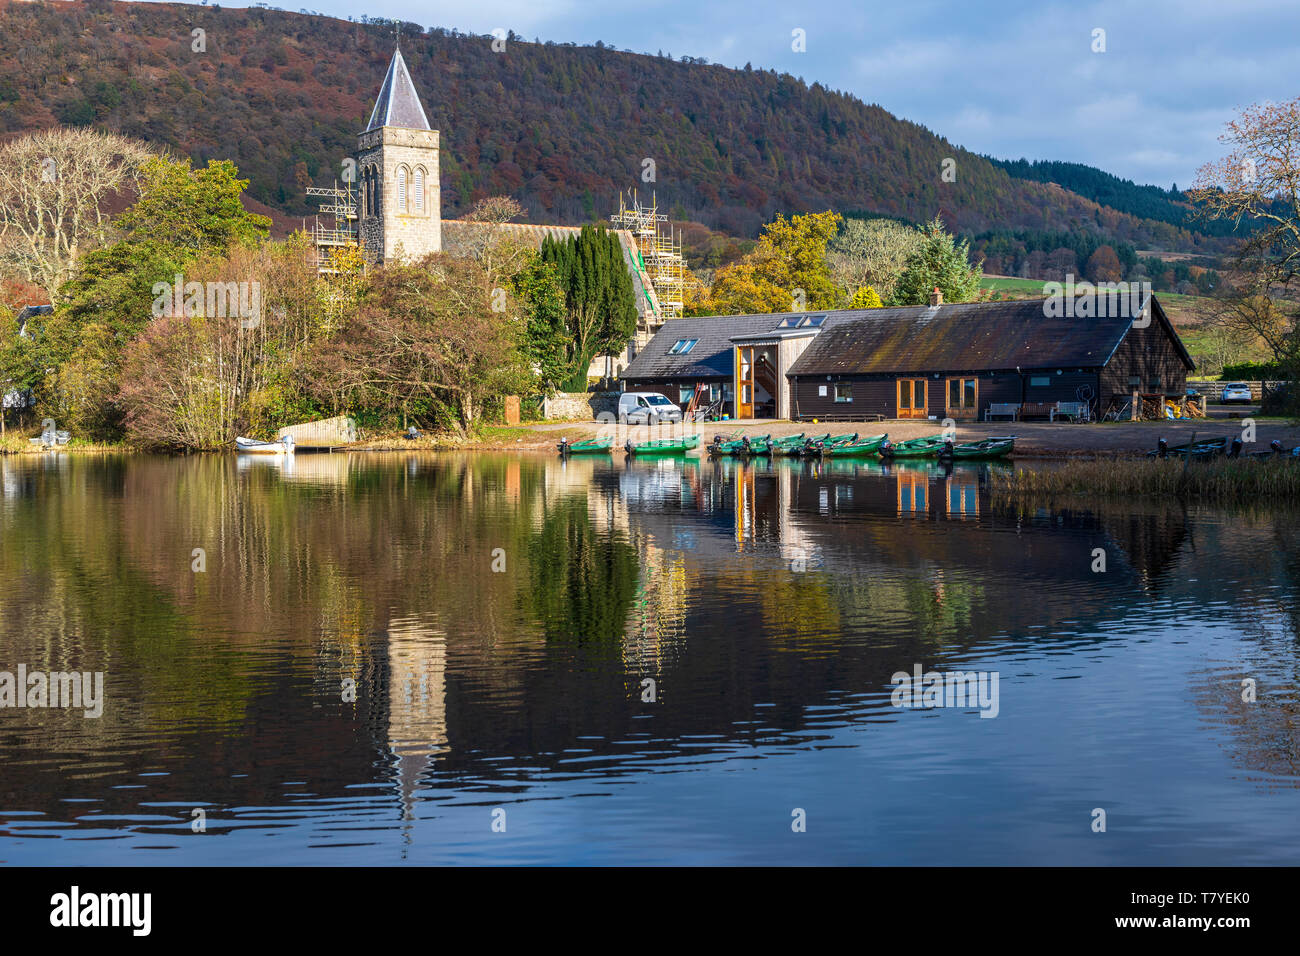 Port of Menteith Fisheries on Lake of Menteith in the Trossachs, Scotland, UK - Stock Image